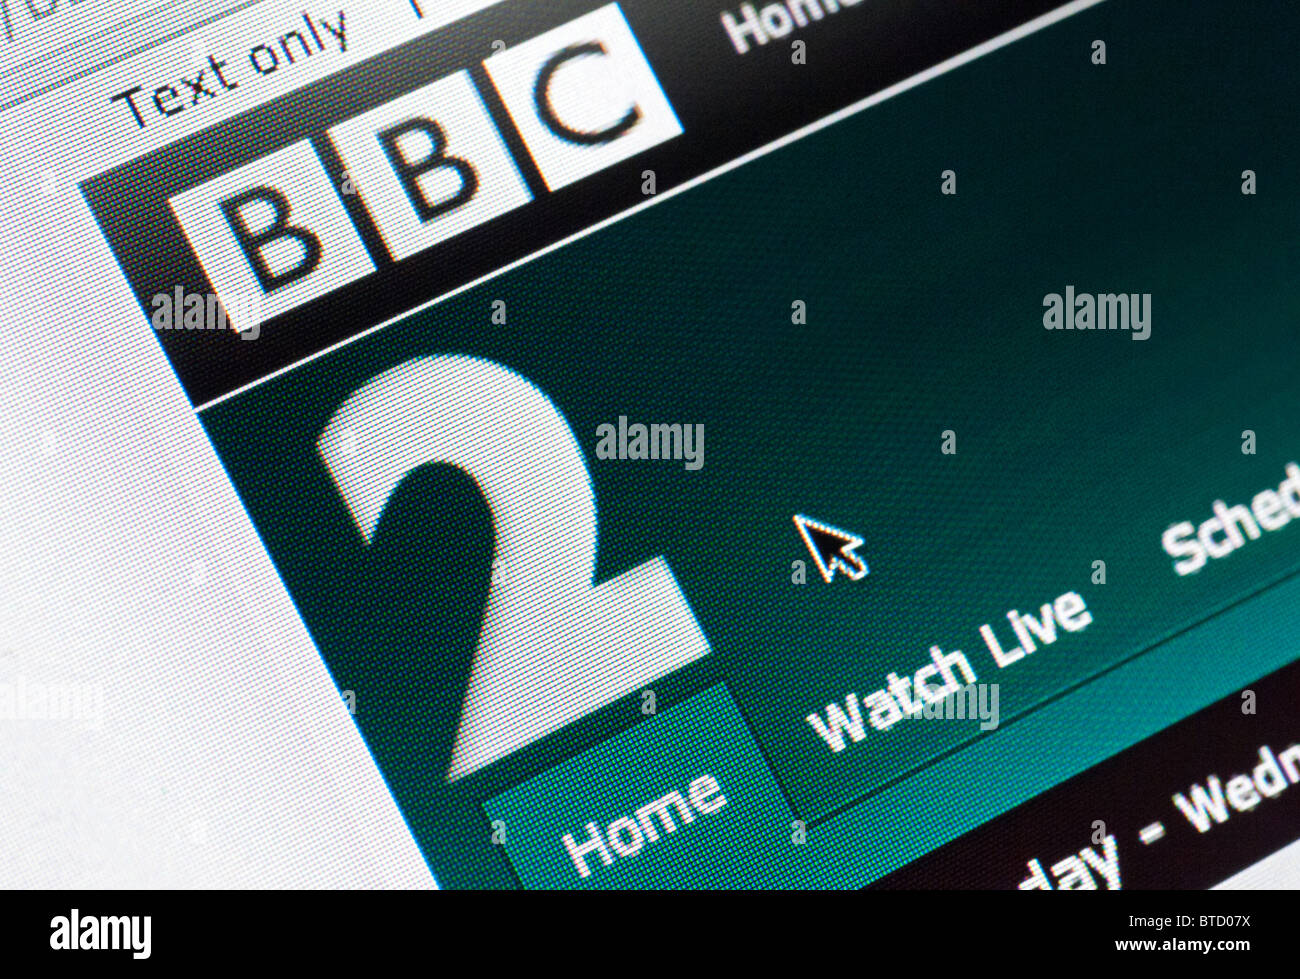 Detail of screenshot from website of BBC Two television channel homepage - Stock Image